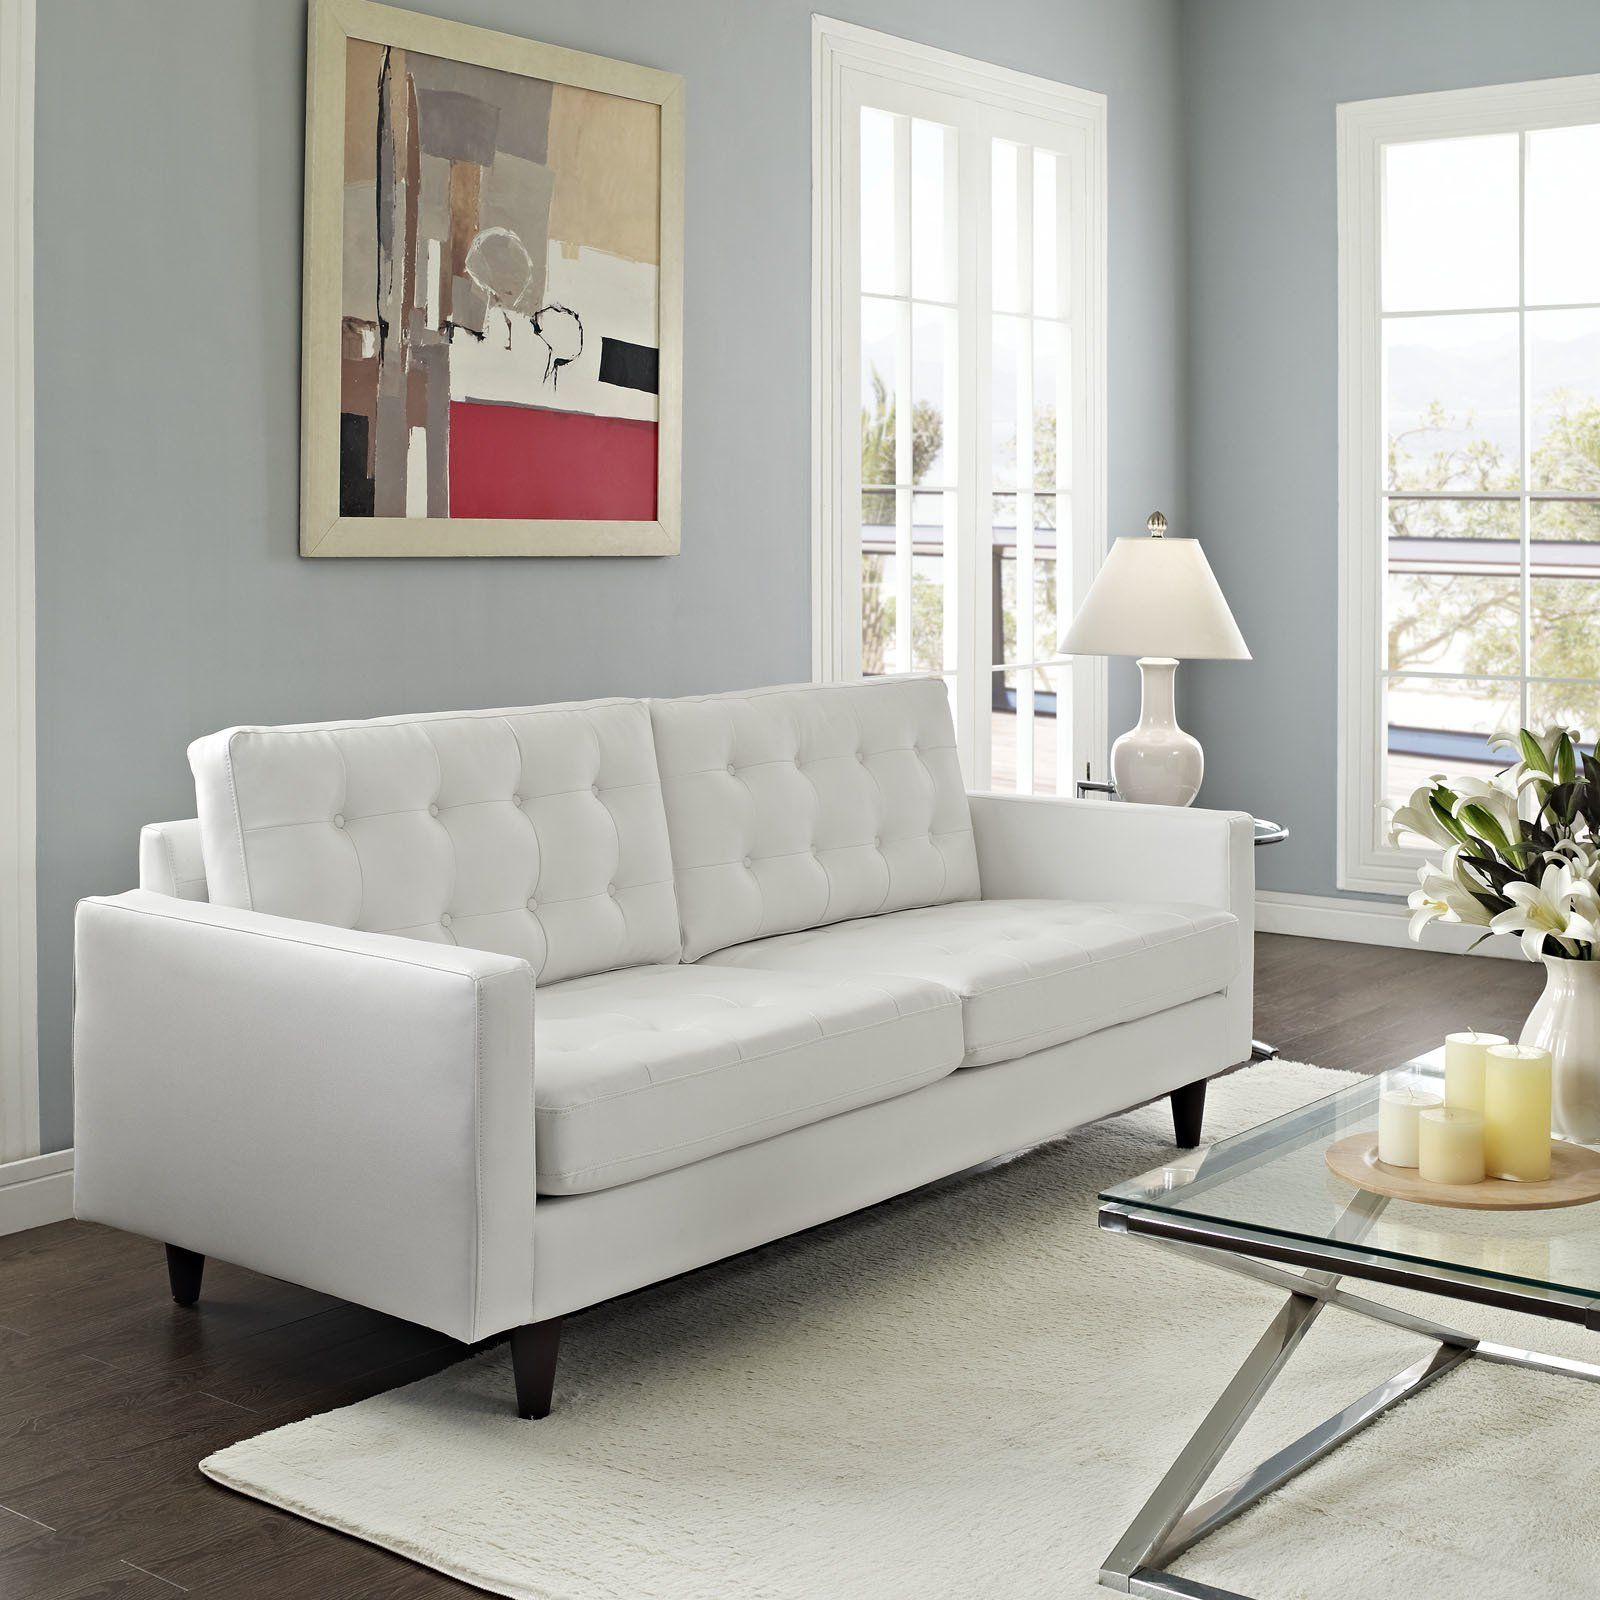 Everett Tufted Leather Settee In 2019: Modern Sofa Deeply Tufted Buttons Bonded Leather Solid